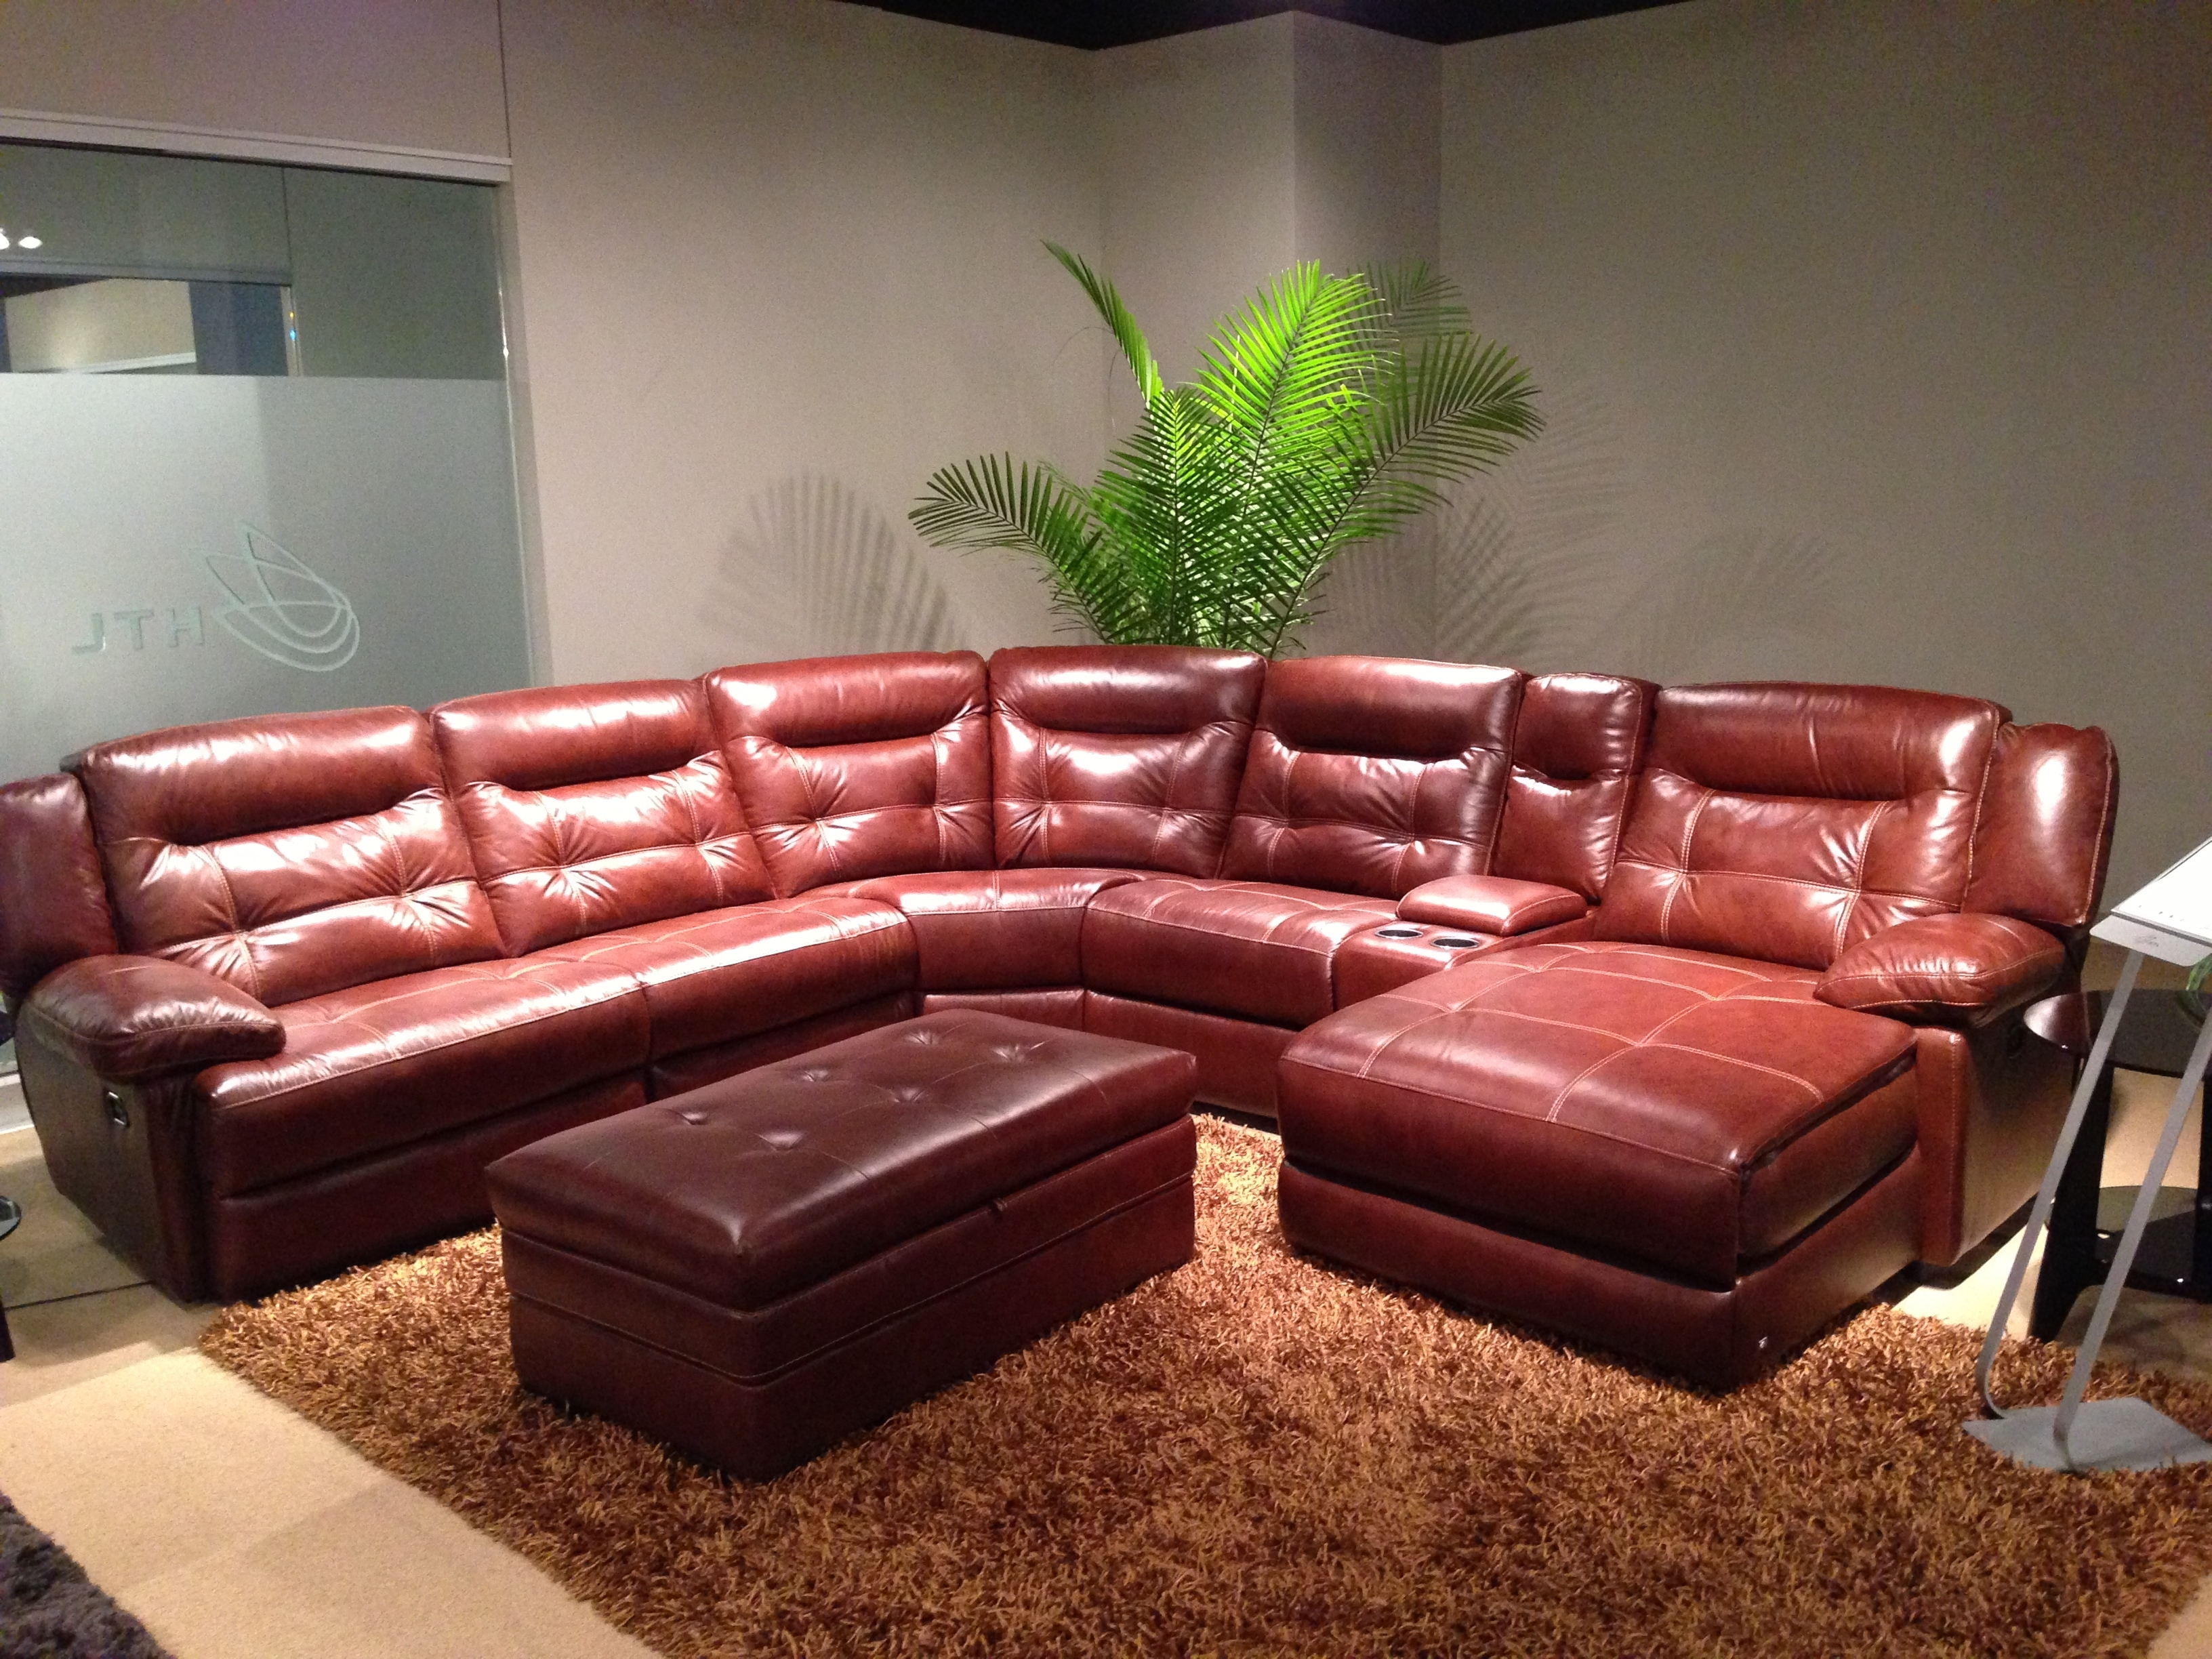 Durango Leather Sectional | | Creative Leather Furniture | Home throughout Red Leather Sectionals With Ottoman (Image 5 of 15)